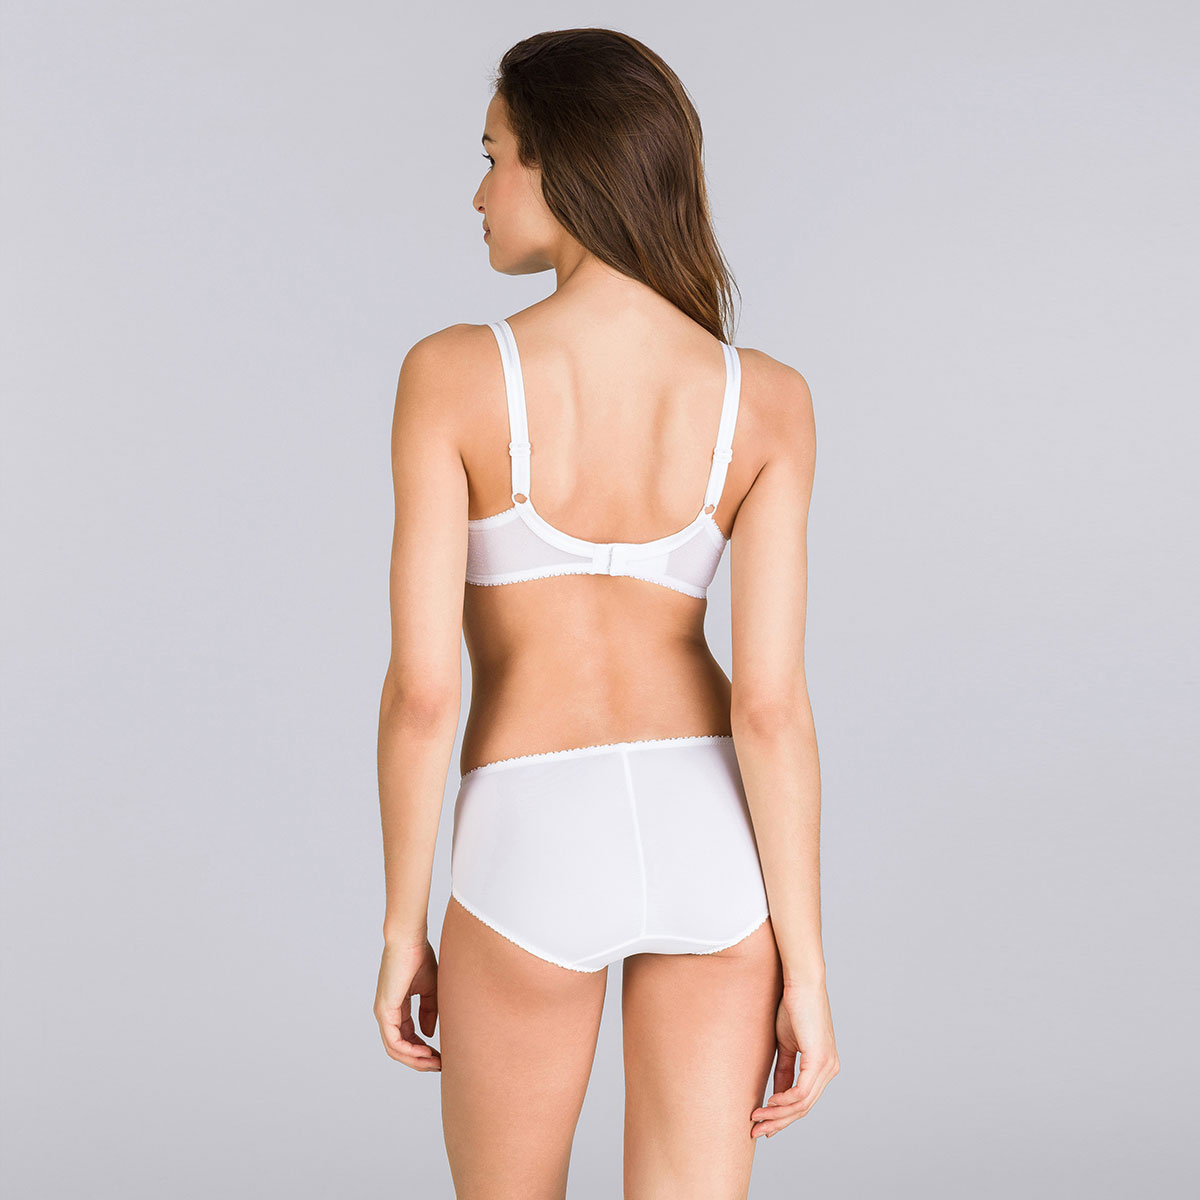 Underwired bra in white Classic Micro Support, , PLAYTEX